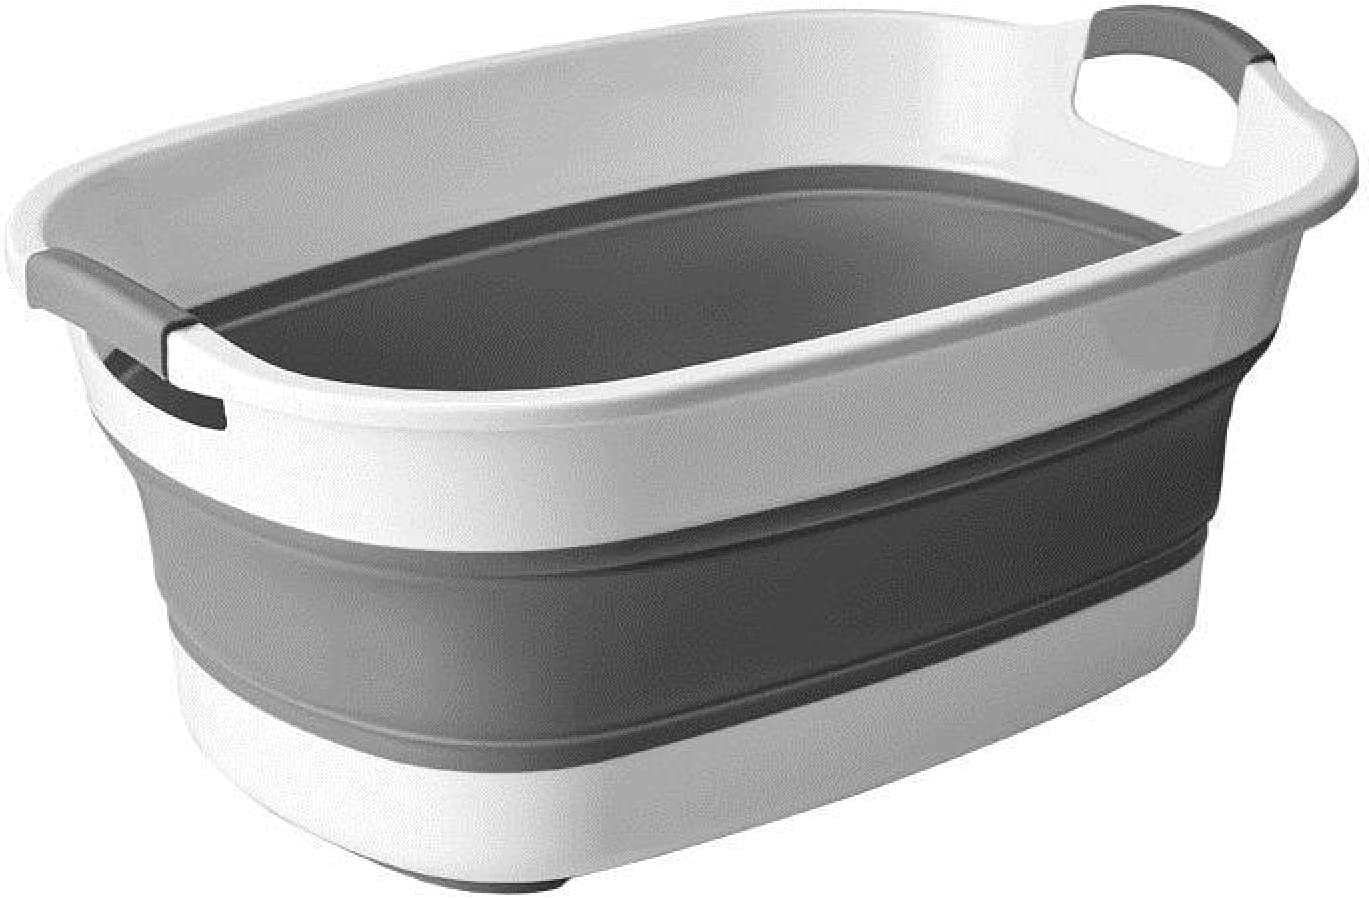 MEYYY Collapsible Plastic Oval Laundry Ranking TOP17 White 25 L Virginia Beach Mall Basket Grey